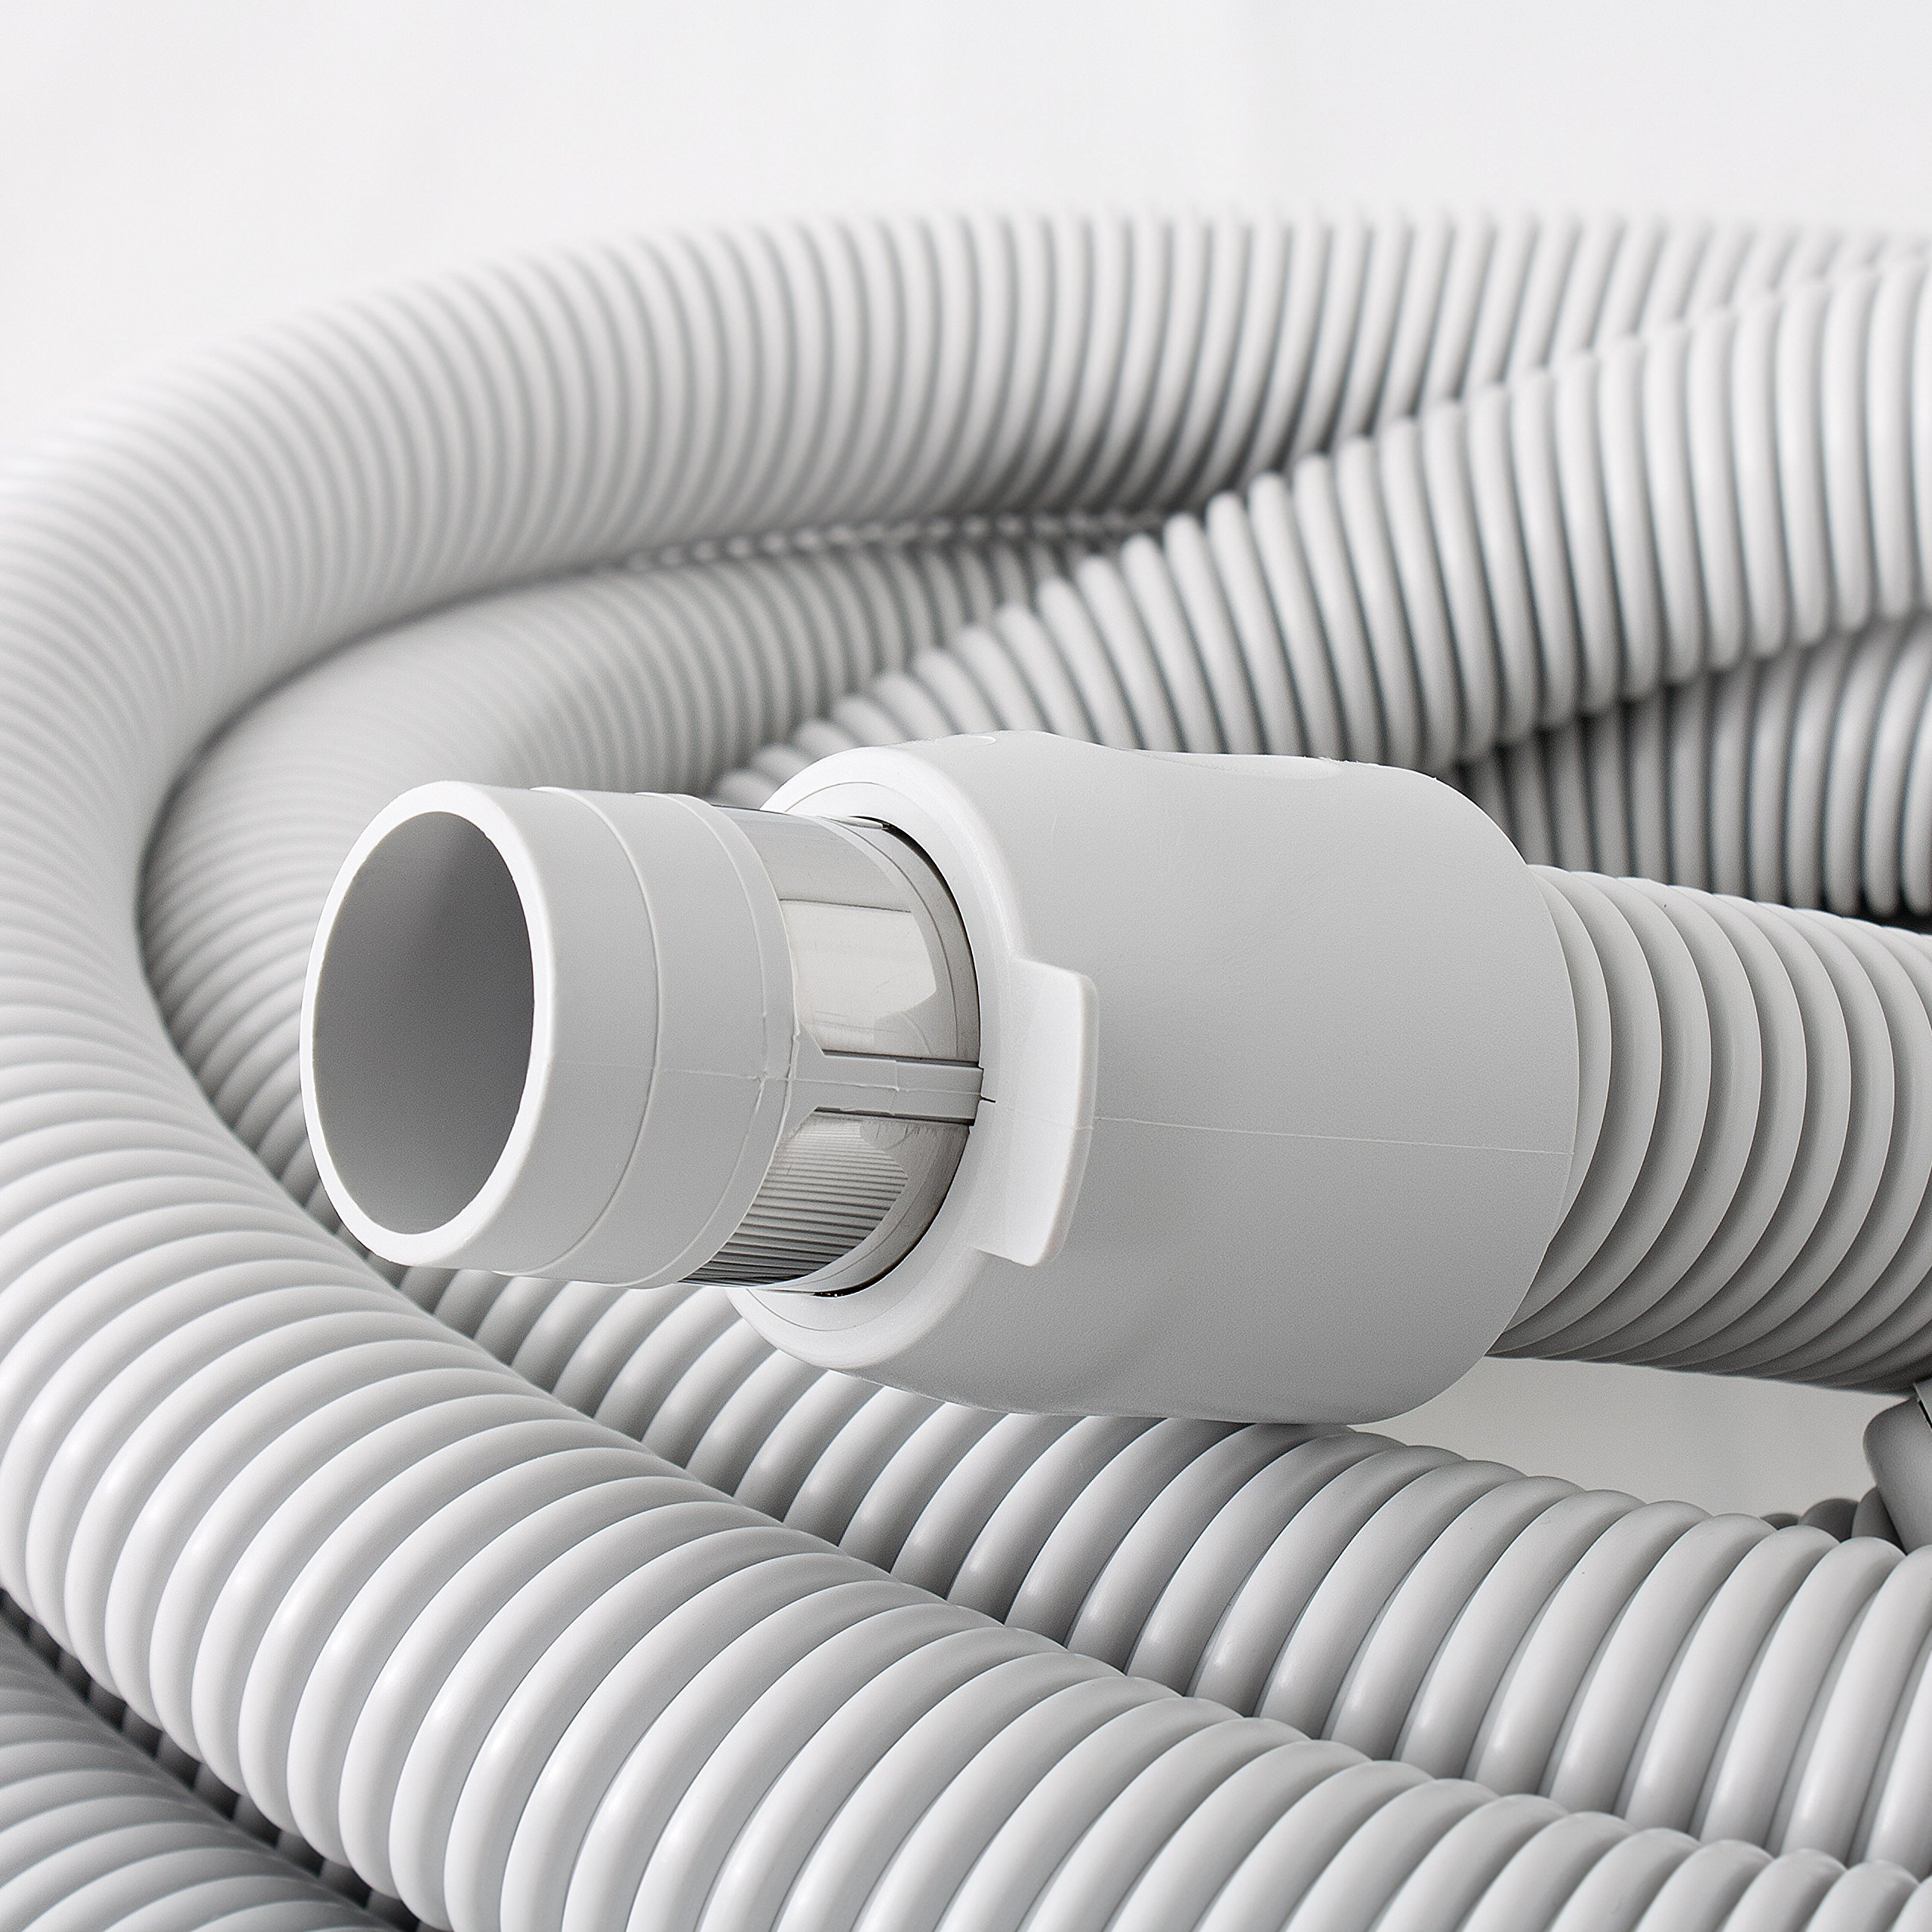 Central Vacuum Deluxe Hardwood, Bare floor and Carpet Kit with 30ft Hose and Accessories by Plastiflex (Image #3)